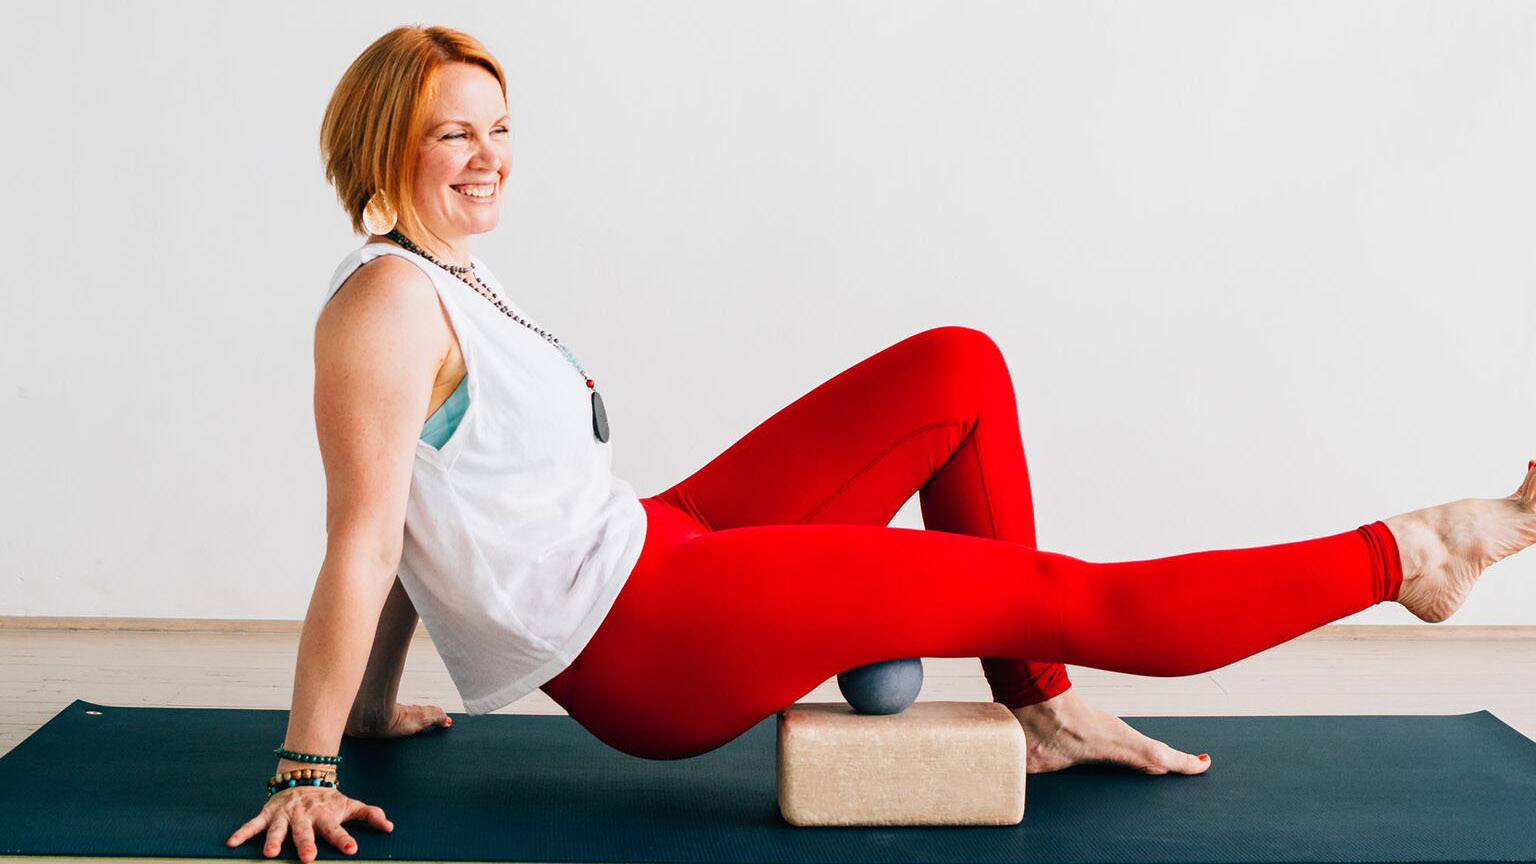 Melissa Charlton Shares The 5 Step Myofascial Release Regimen She